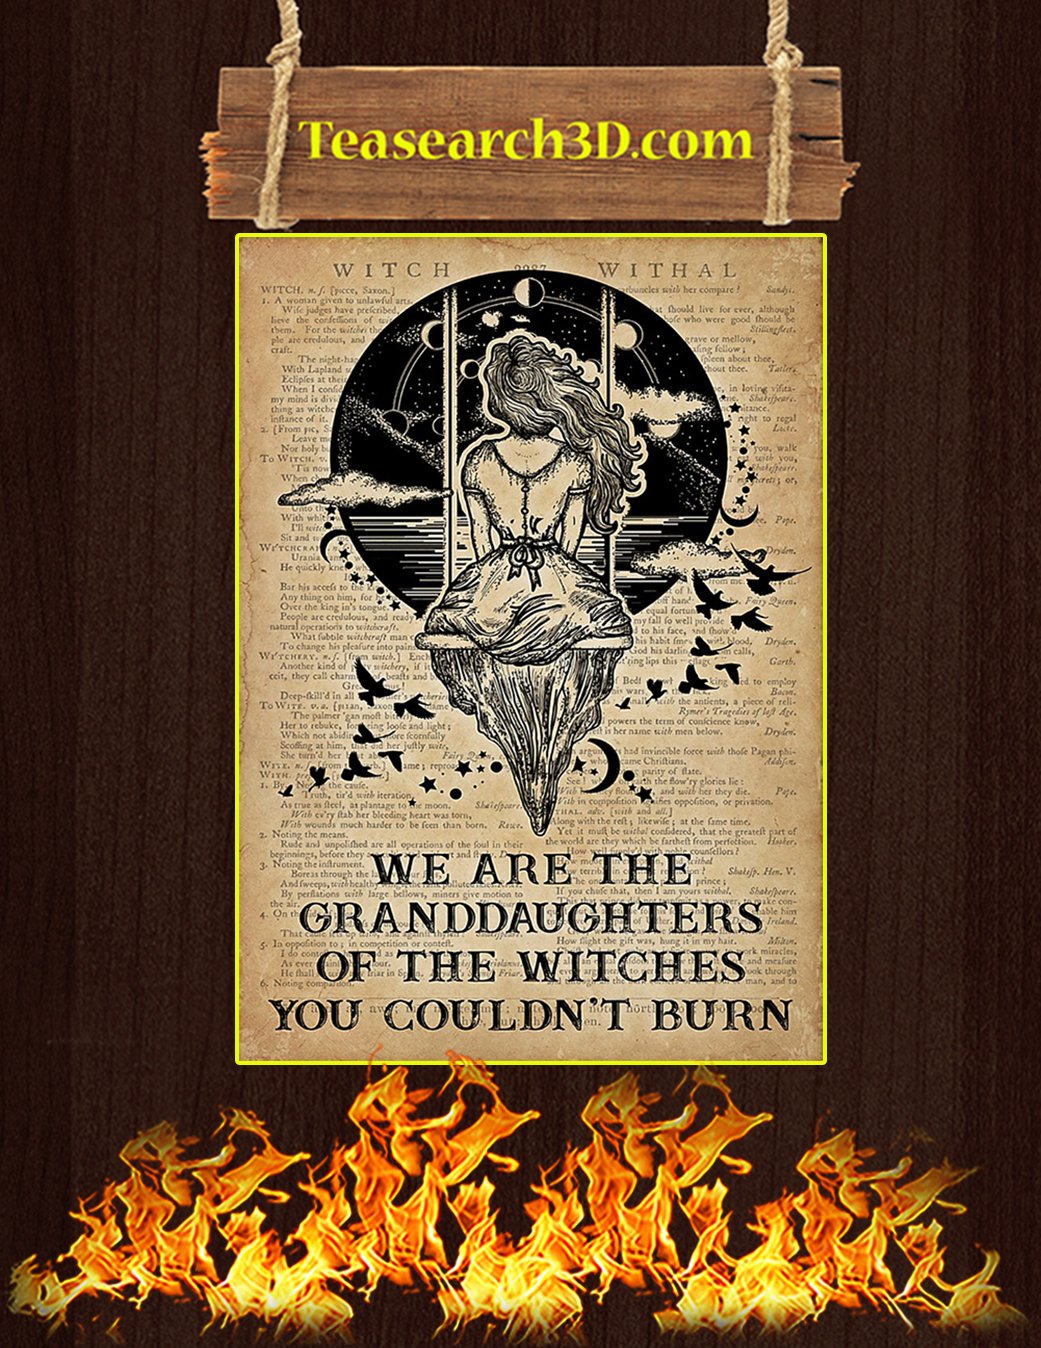 We are the granddaughters of the witches you couldn't burn poster A1